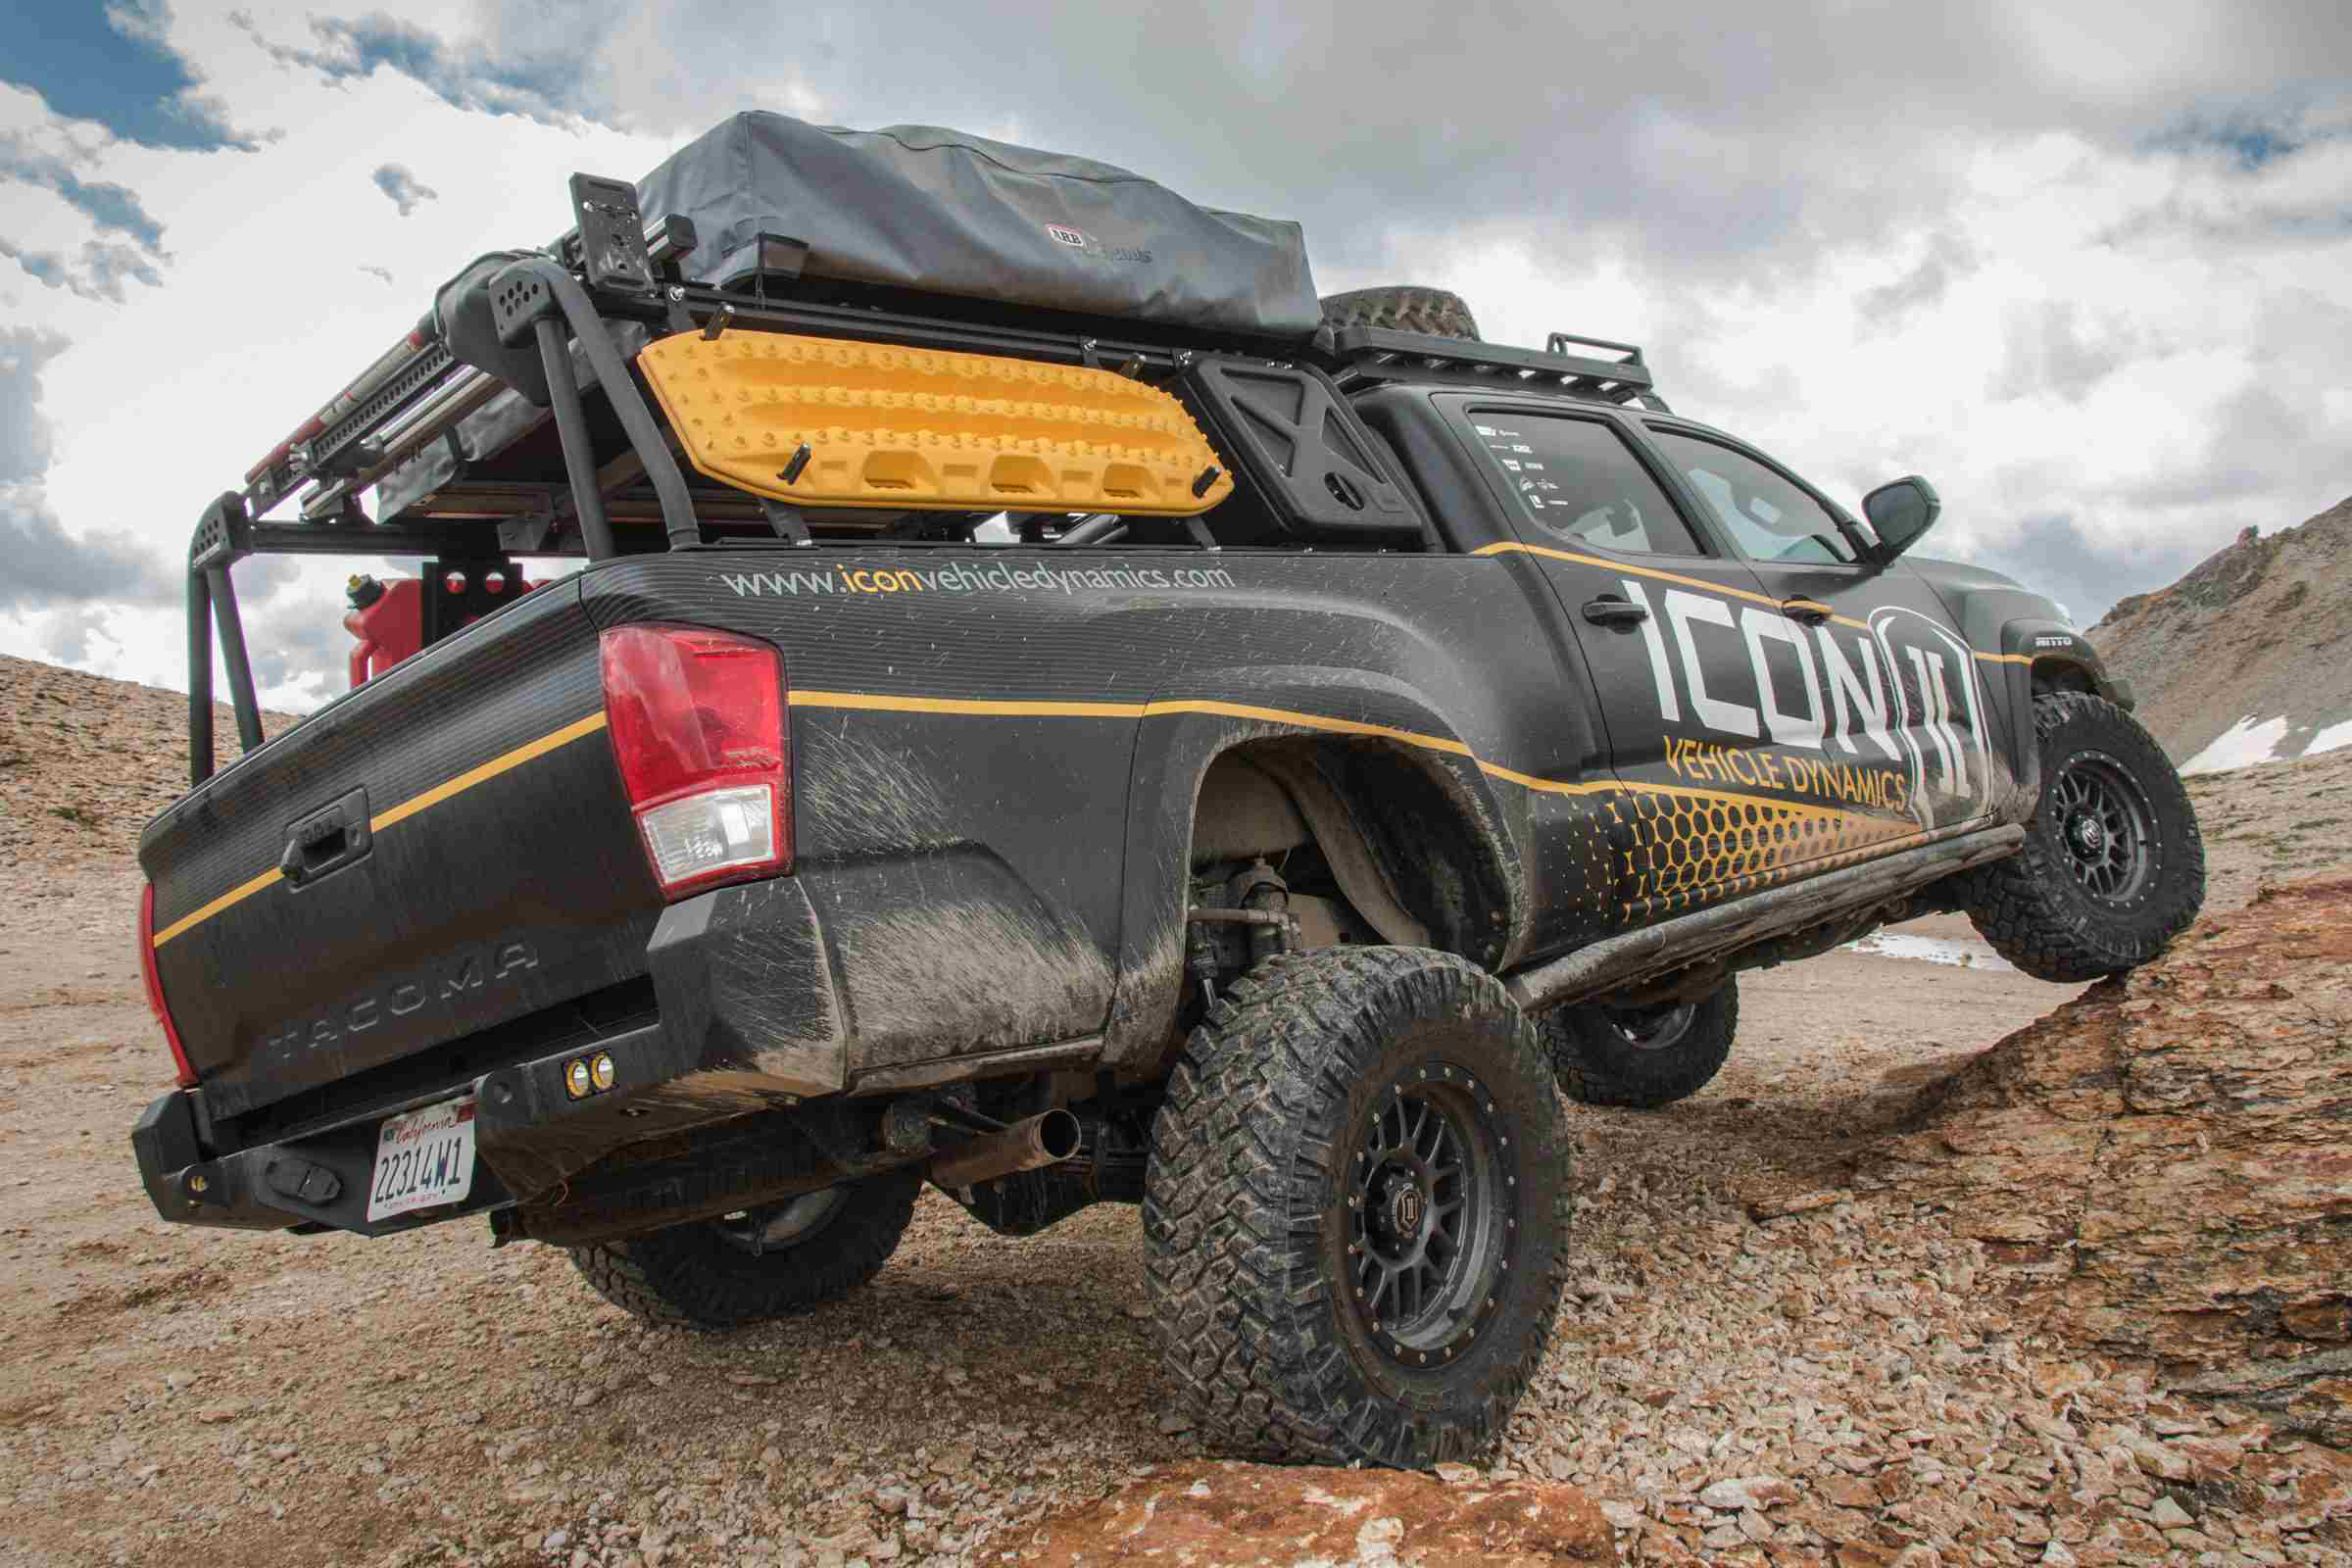 Icon launches new suspension system for Toyota Tacoma